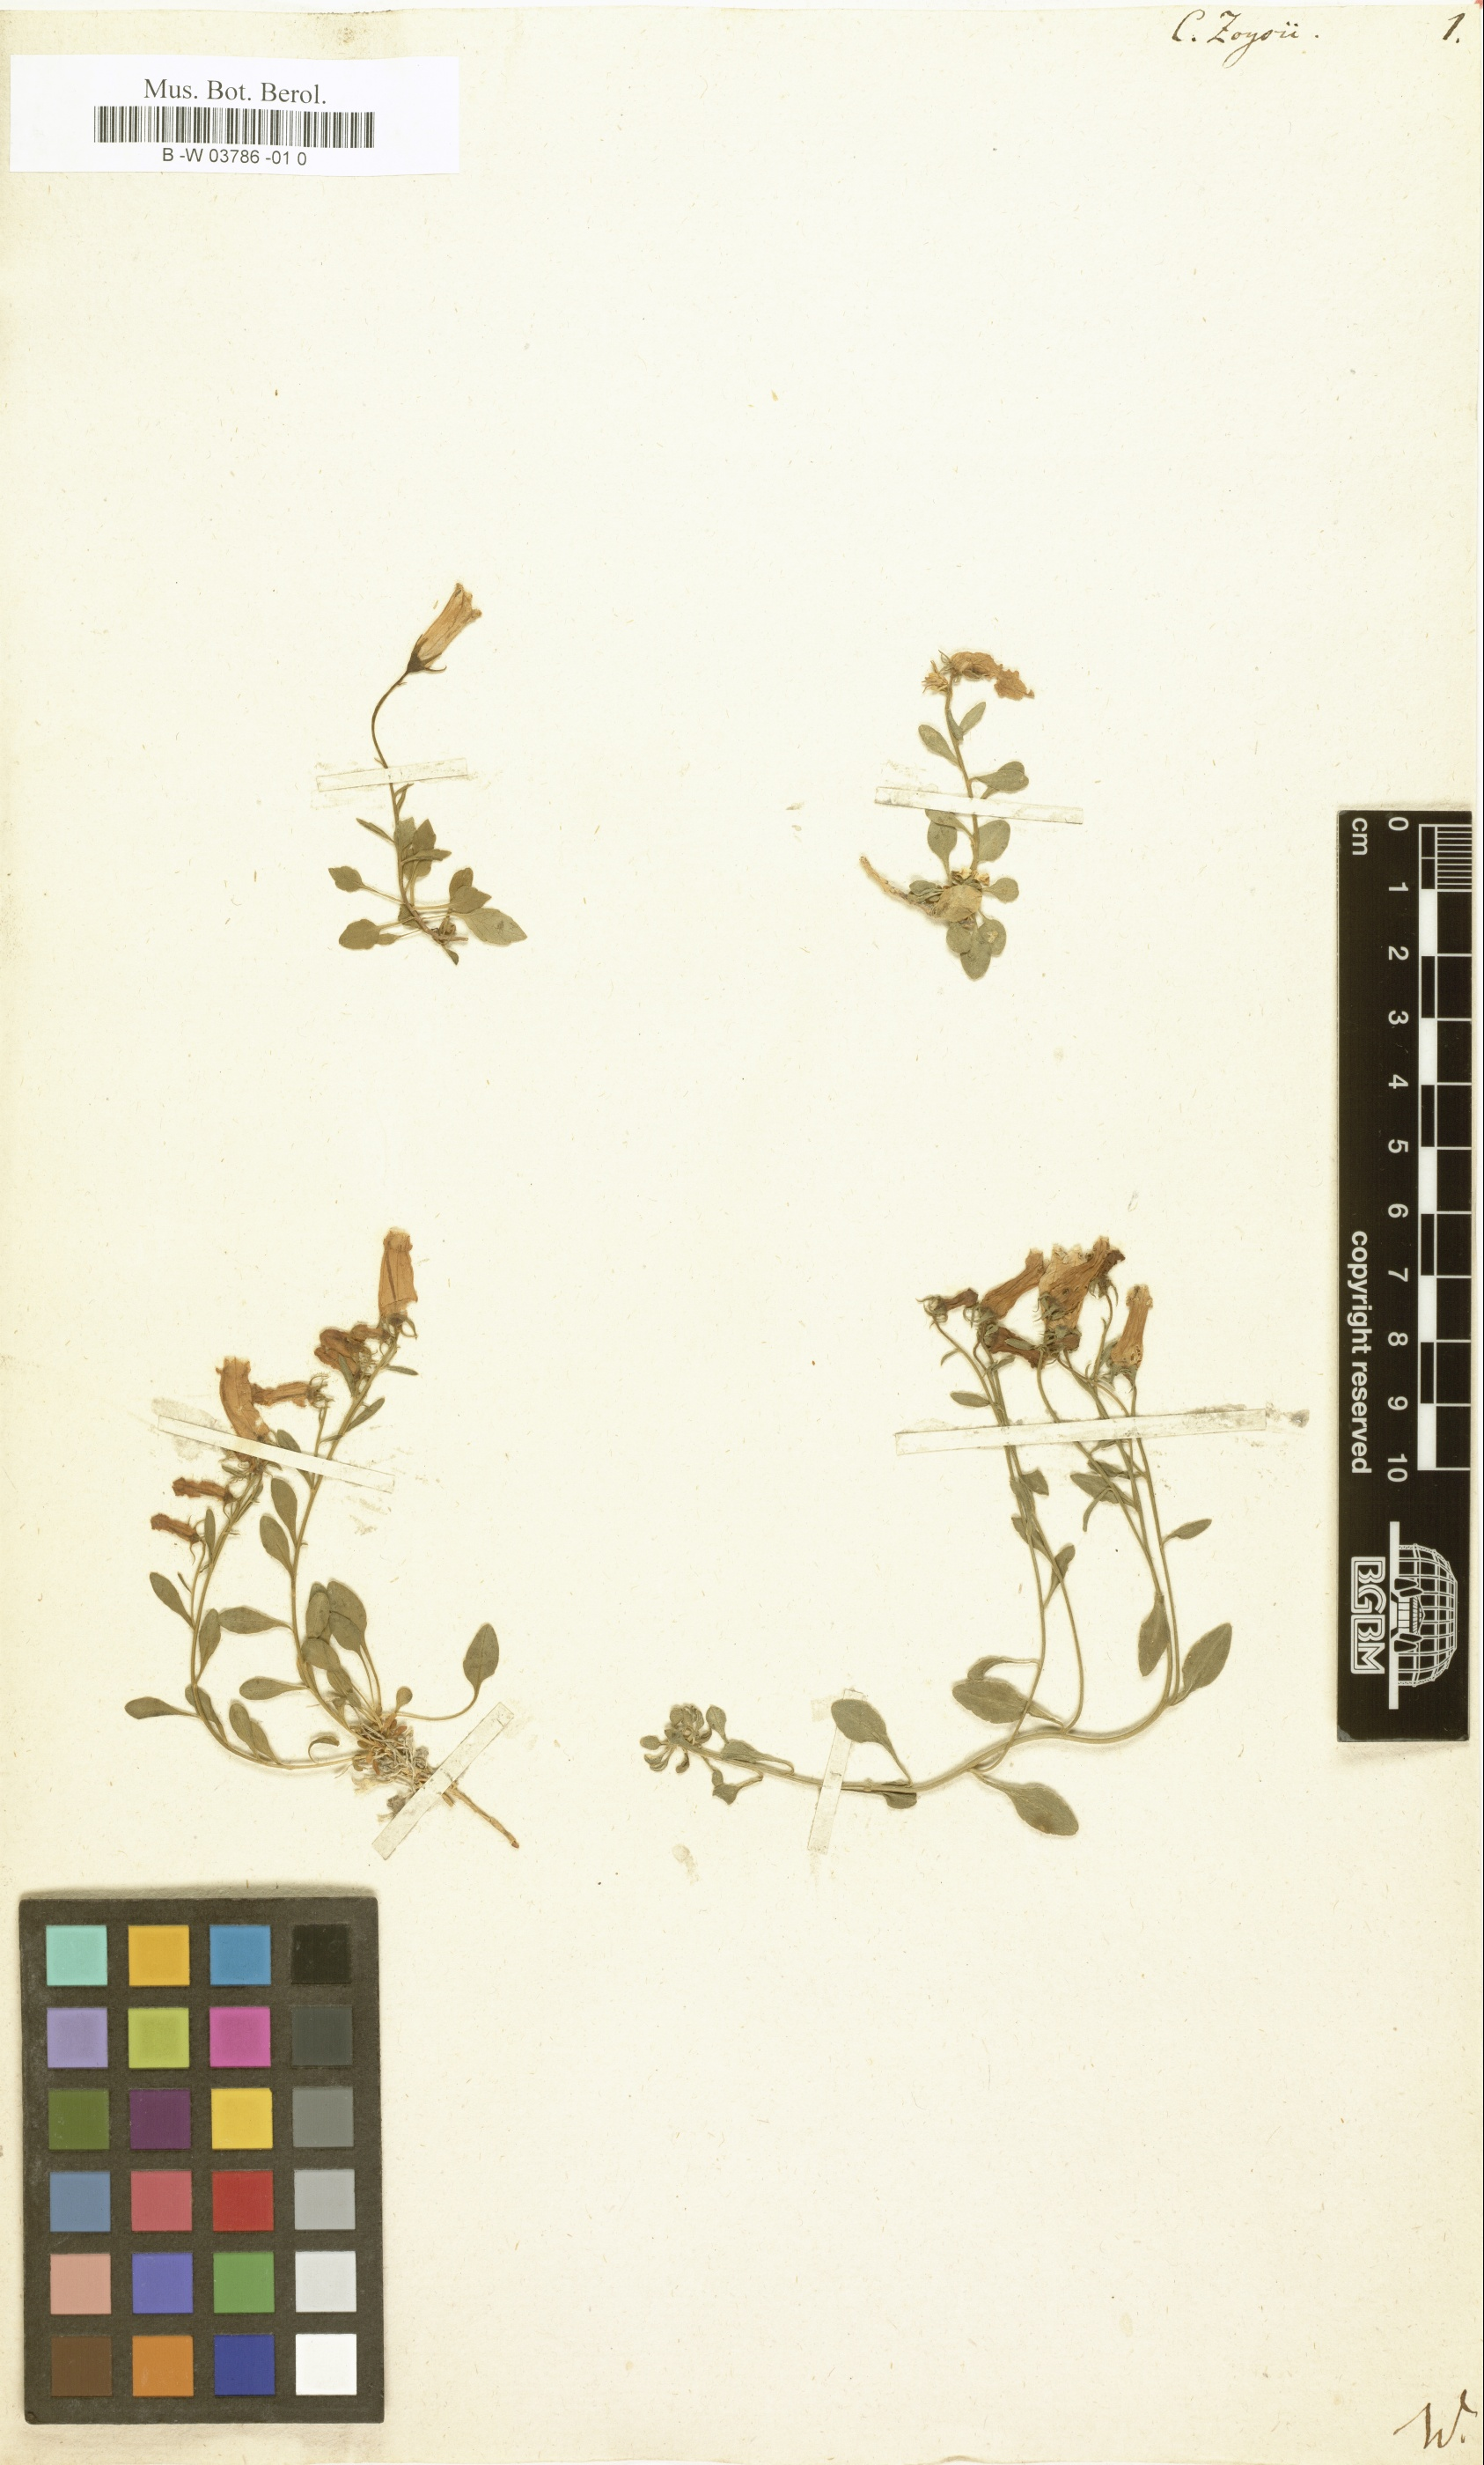 © Botanic Garden and Botanical Museum Berlin-Dahlem, Freie Universität Berlin<br>by  Röpert, D. (Ed.) 2000- (continuously updated): Digital specimen images at the Herbarium Berolinense. - Published on the Internet http://ww2.bgbm.org/herbarium/ (Barcode: B -W 03786 -01 0 / ImageId: 320469) [accessed 26-Nov-11].<br>